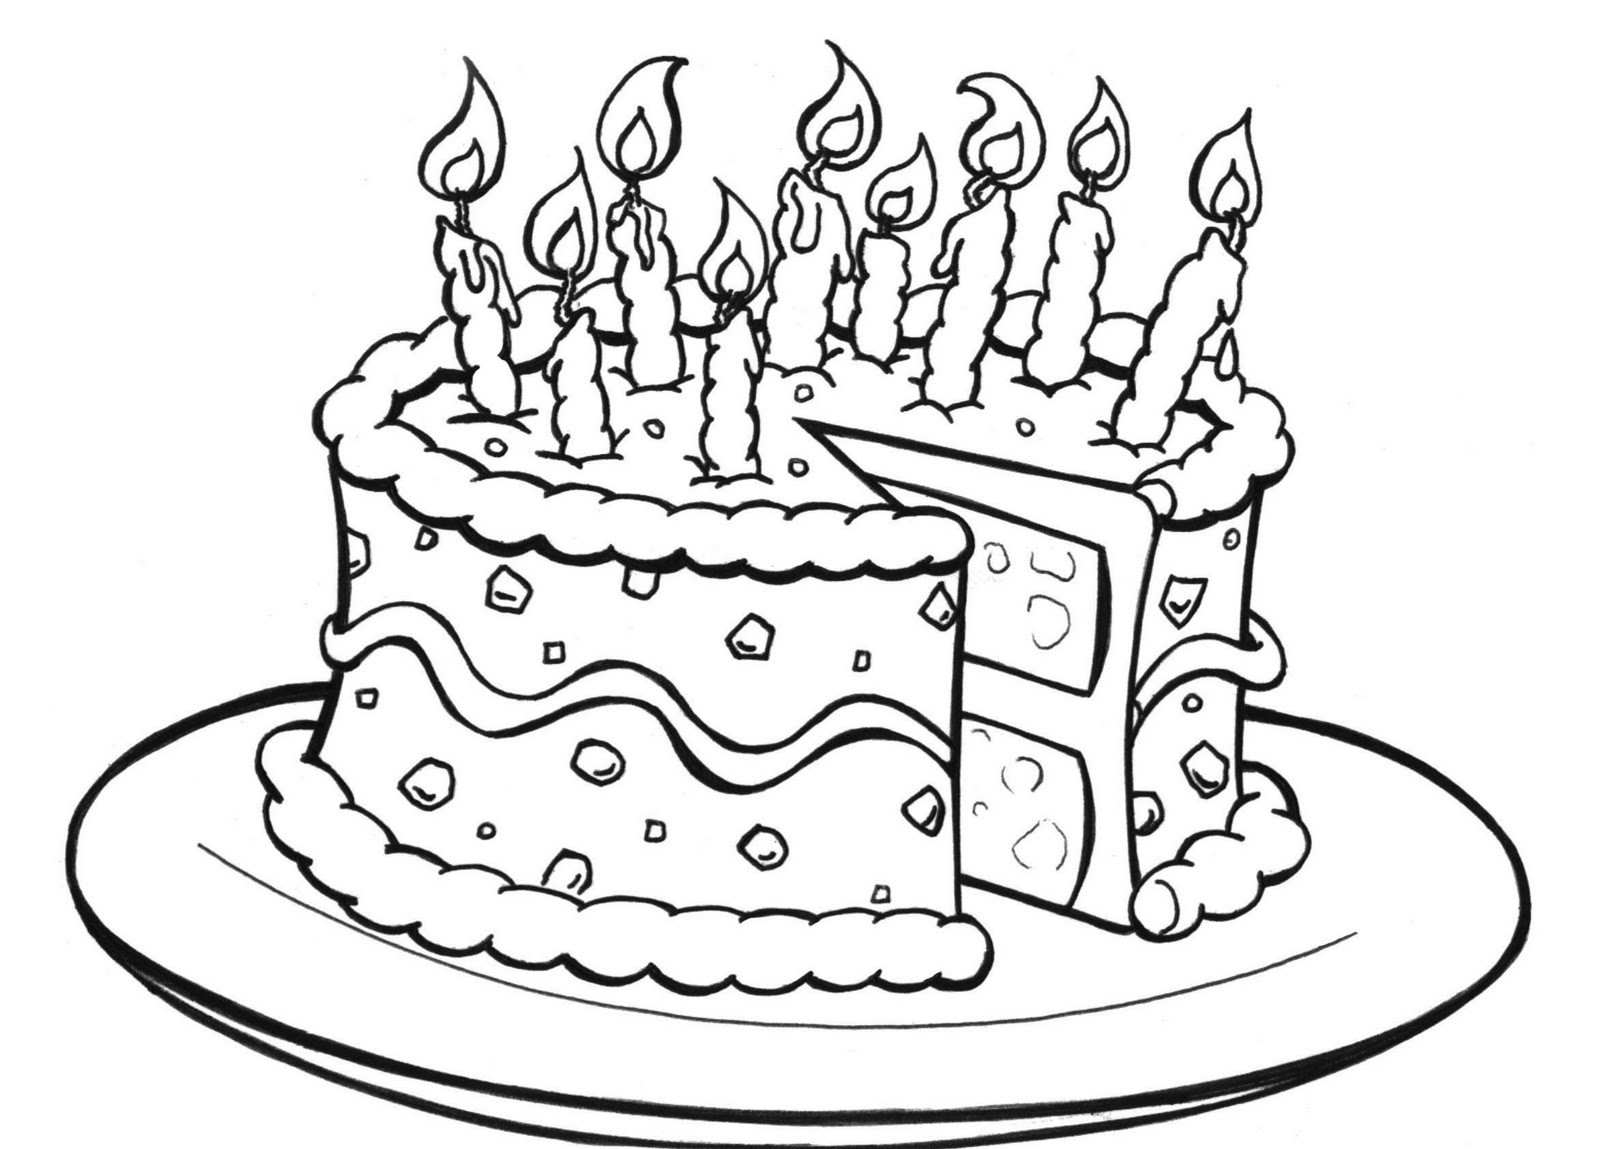 coloring pages cake free printable birthday cake coloring pages for kids cake pages coloring